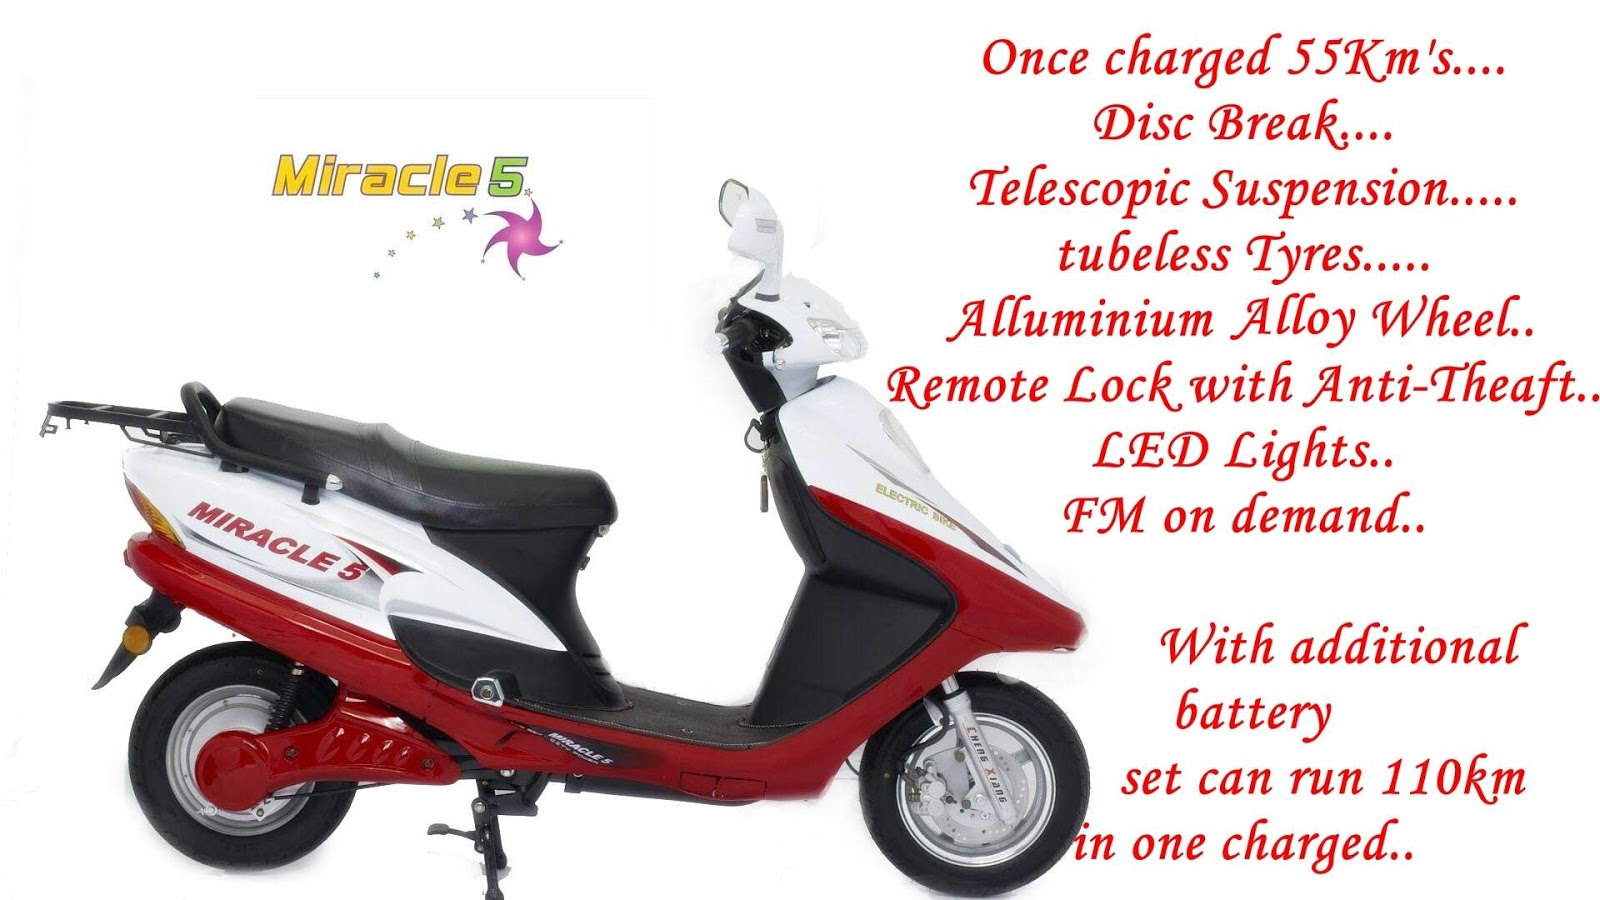 Electric Bikes Scooters In India Miracle5 Scooter Wiring Schematic For Sale The Motor Controller Acts As Brain Of Ev And Incorporates Sophisticated Electronic Technology Accelerator Is Located On Right Hand Side Grip